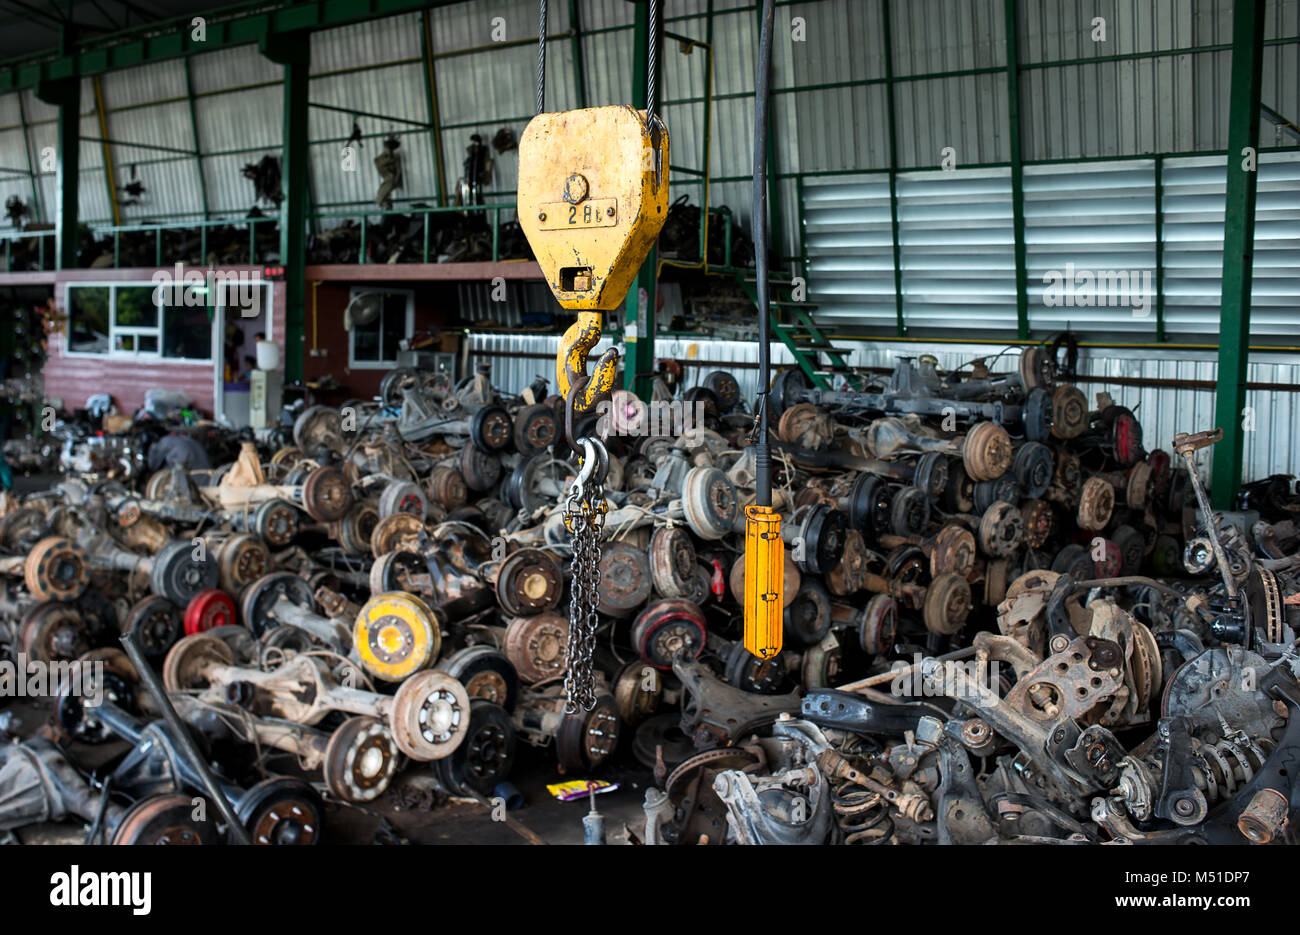 Used Car Parts For Sale >> Rusty Car Parts For Sale Stock Photos Rusty Car Parts For Sale